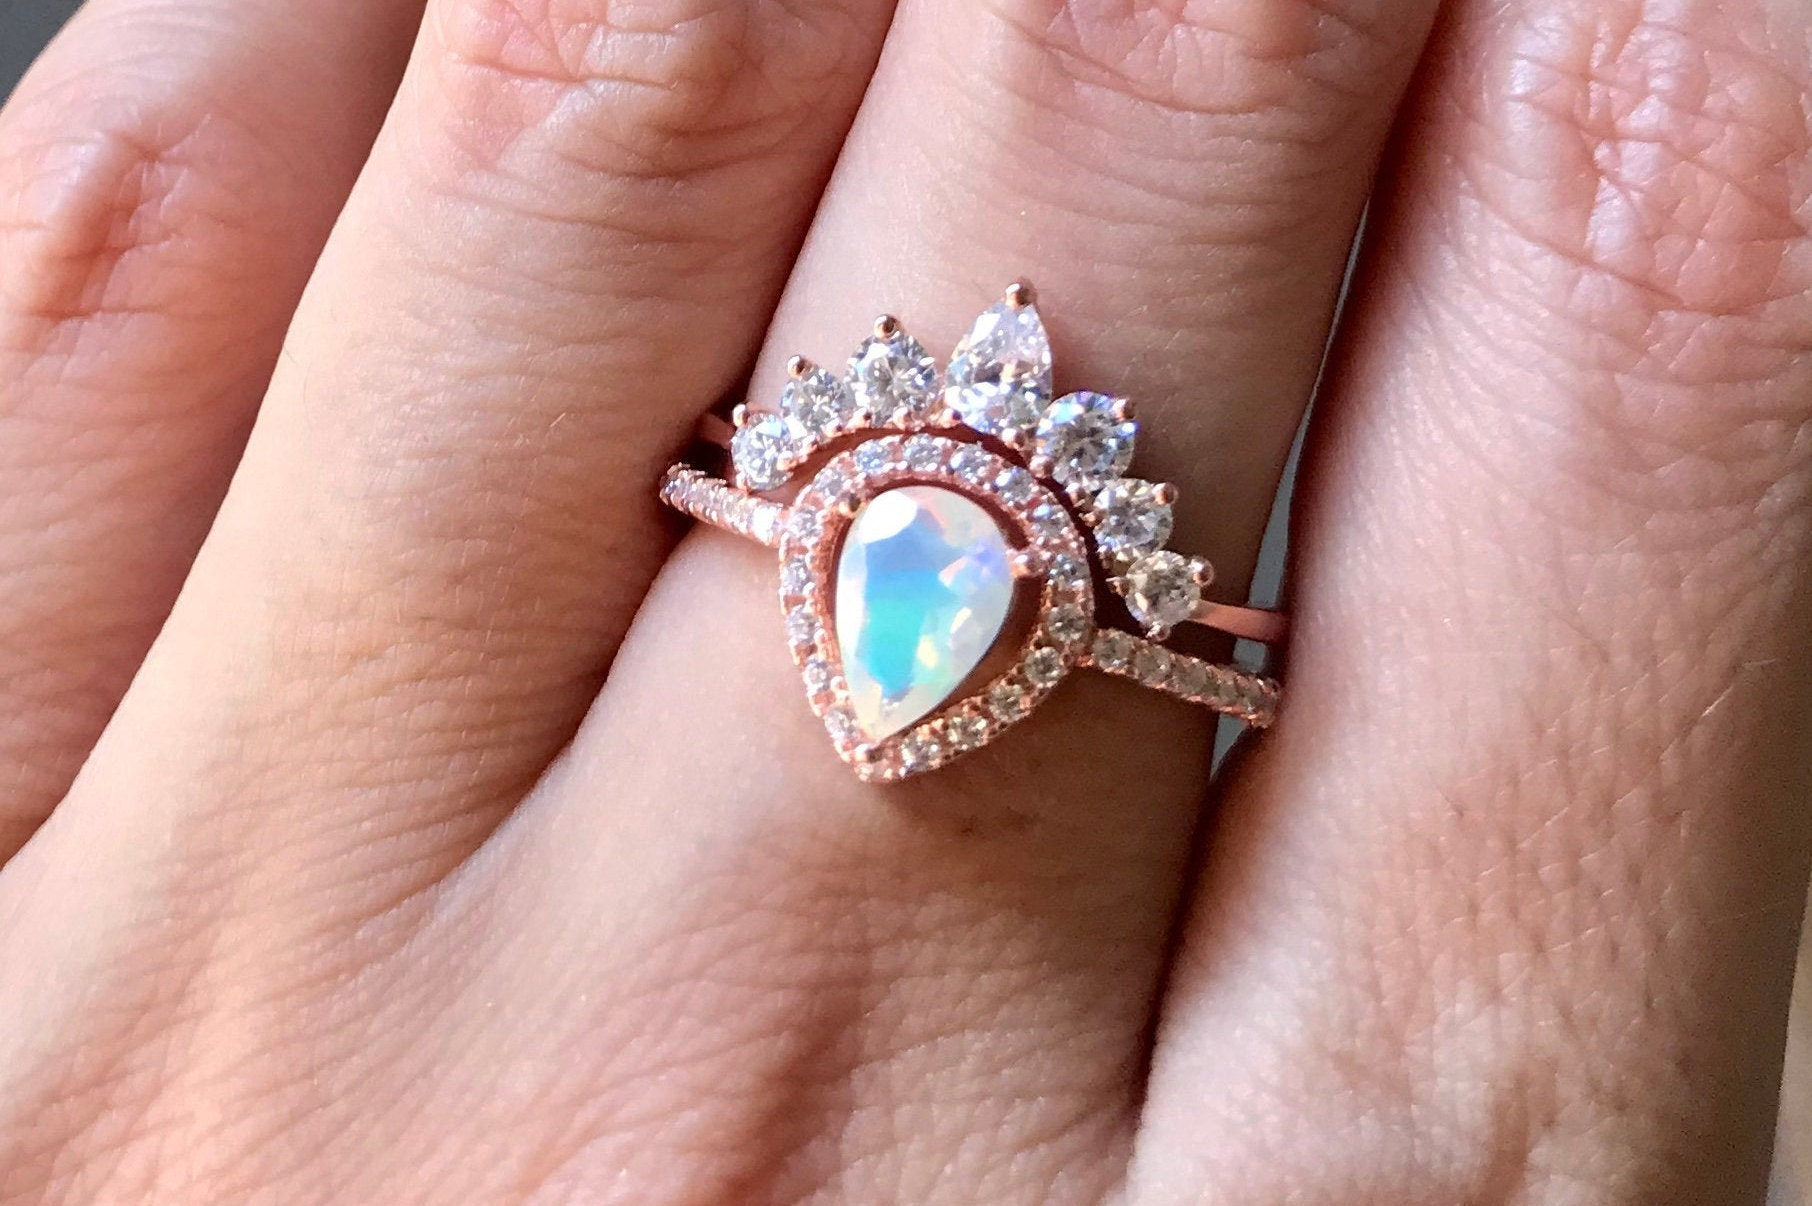 dd733b220 Teardrop Opal Engagement Vintage Ring Set- Opal Halo Deco Promise Ring-  Pear Welo Opal Anniversary Ring- October Birthstone Ring